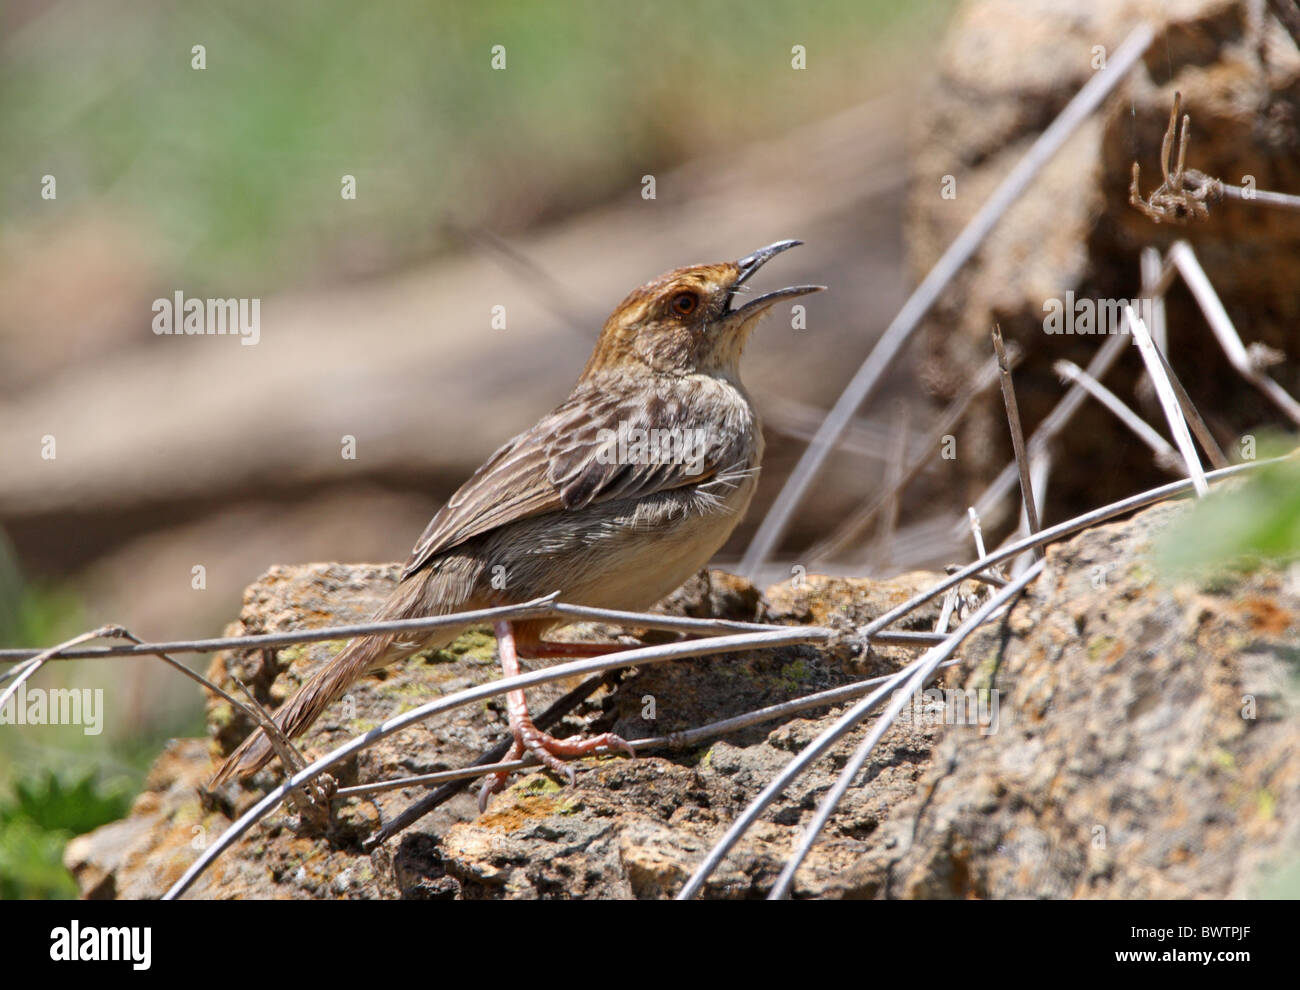 Rock-loving Cisticola (Cisticola aberrans emini) adult, panting in heat, standing on rock, Hell's Gate N.P., - Stock Image